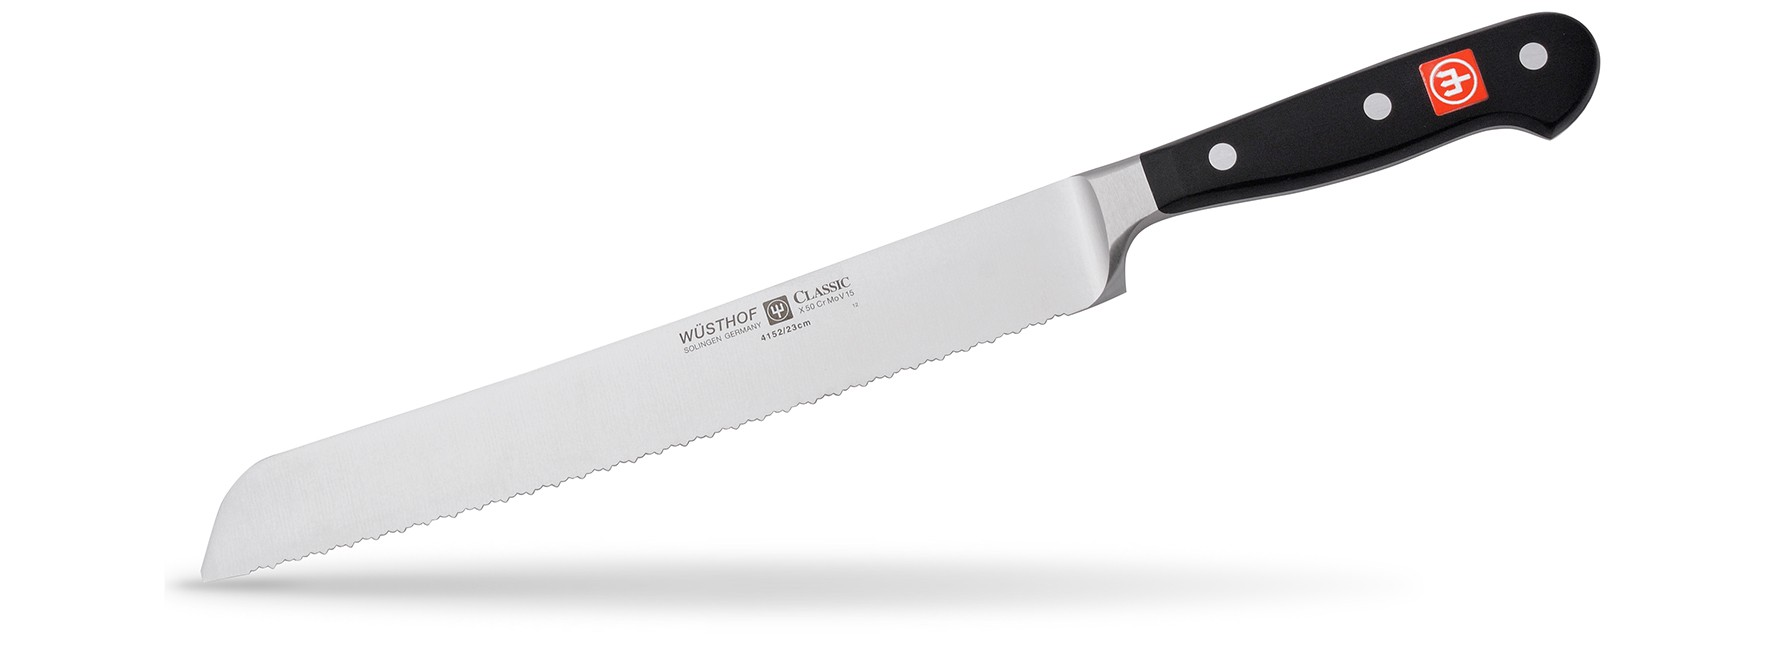 Wusthof Classic 9in. Double Serrated Bread Knife Photo